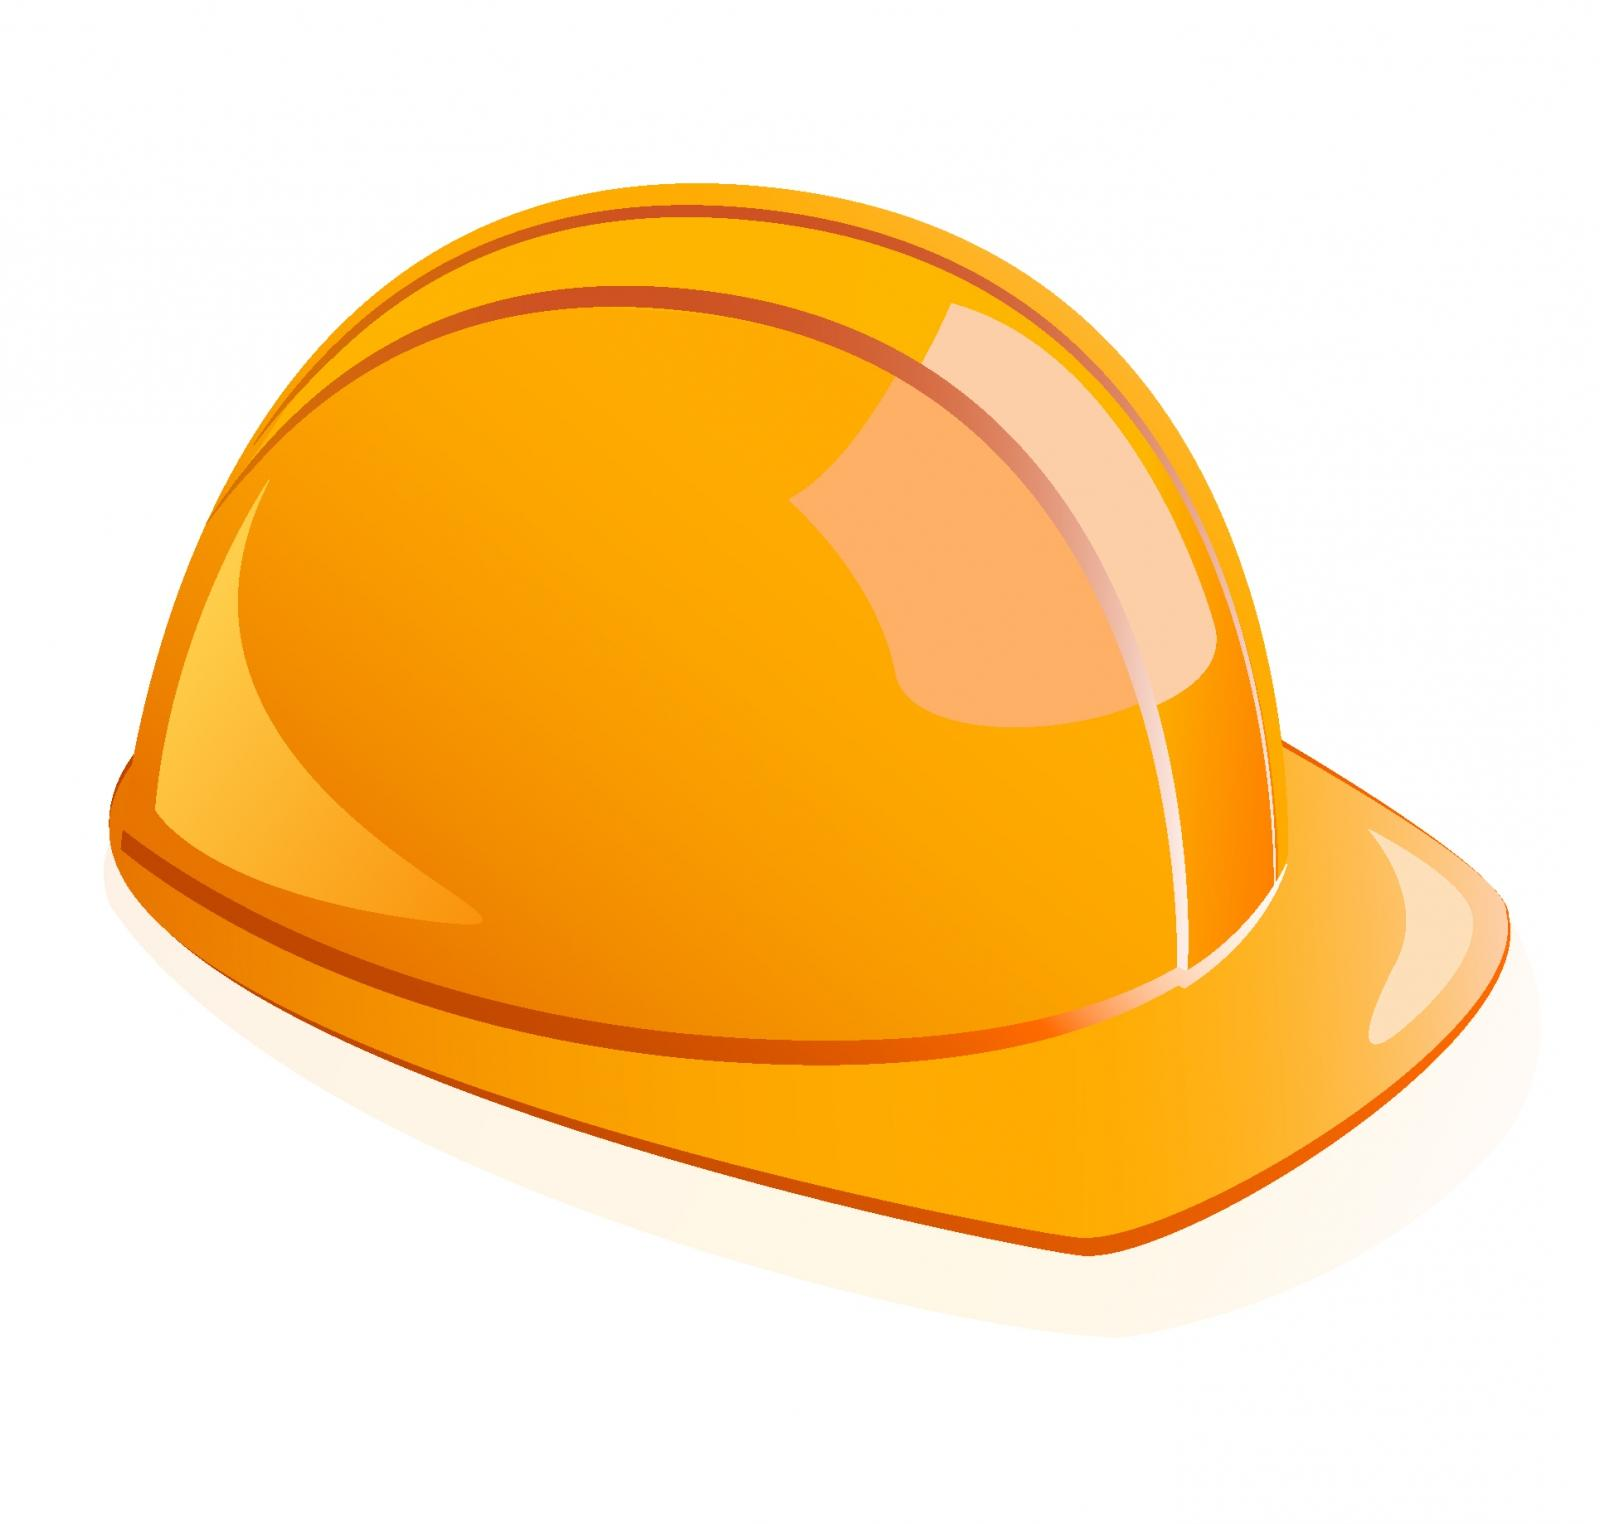 construction hat clipart at getdrawings com free for personal use rh getdrawings com  construction hard hat clip art